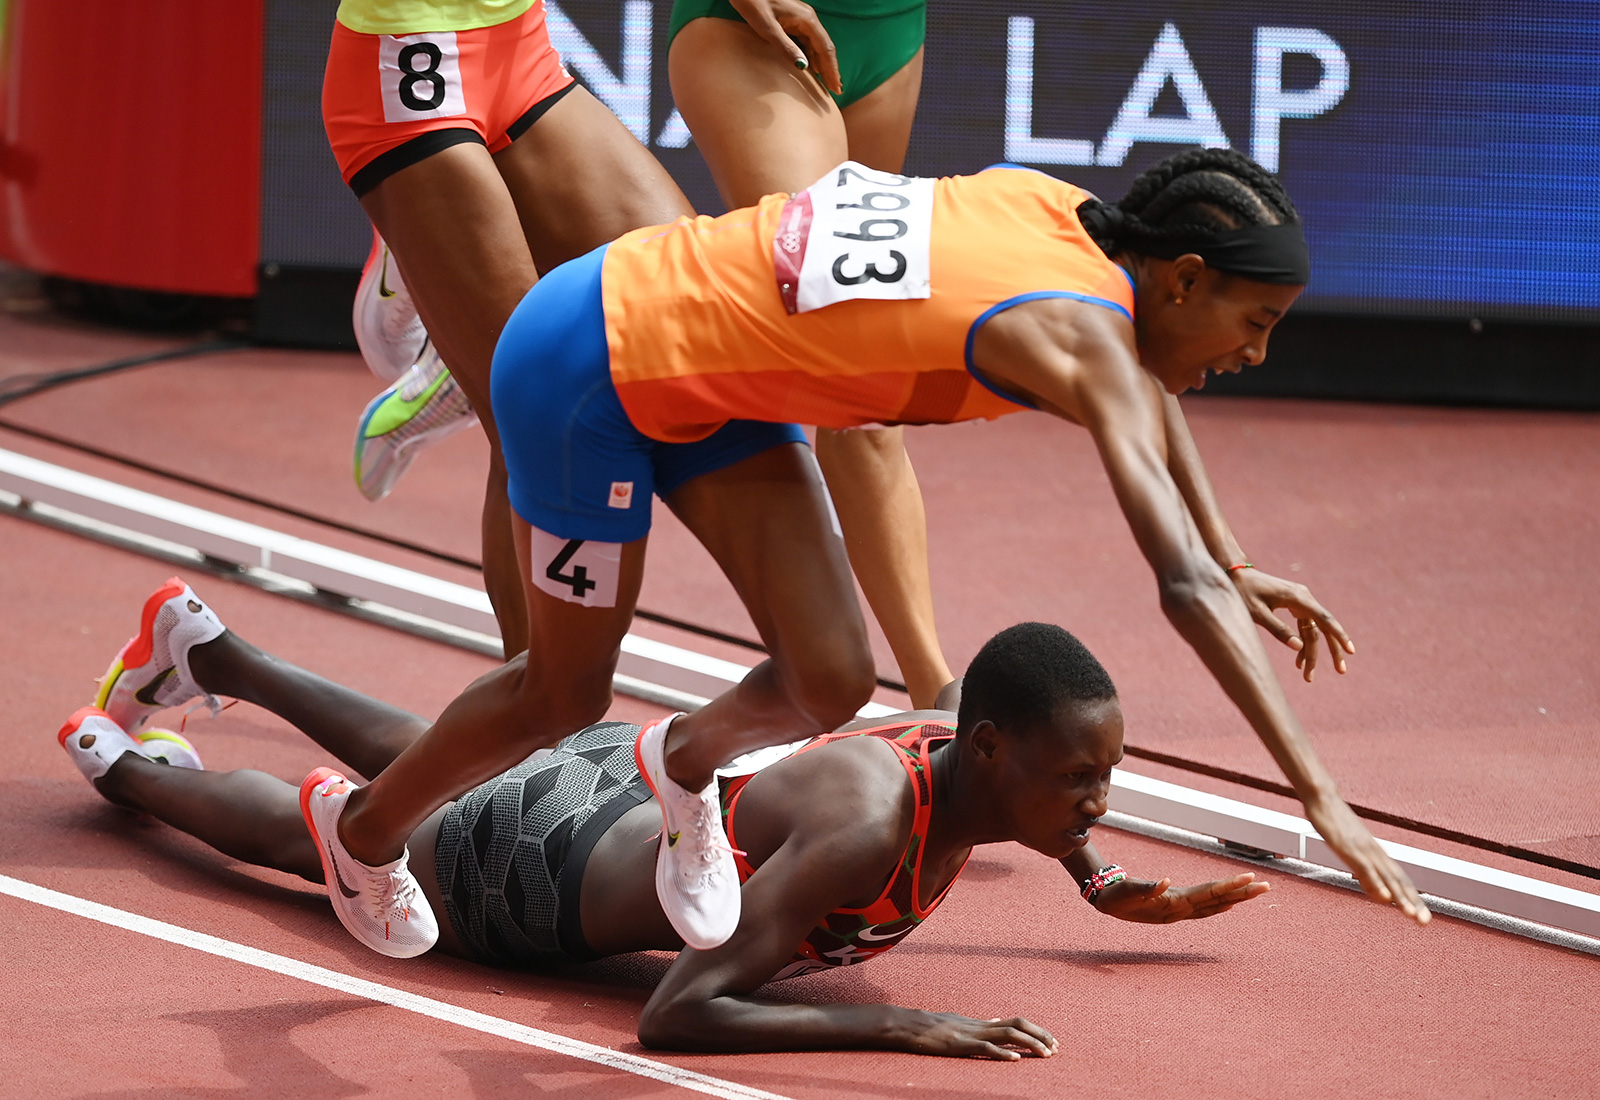 Dutch runner Sifan Hassan and Kenya's Edinah Jebitok trip and fall during a 1500 meter heat on August 2.